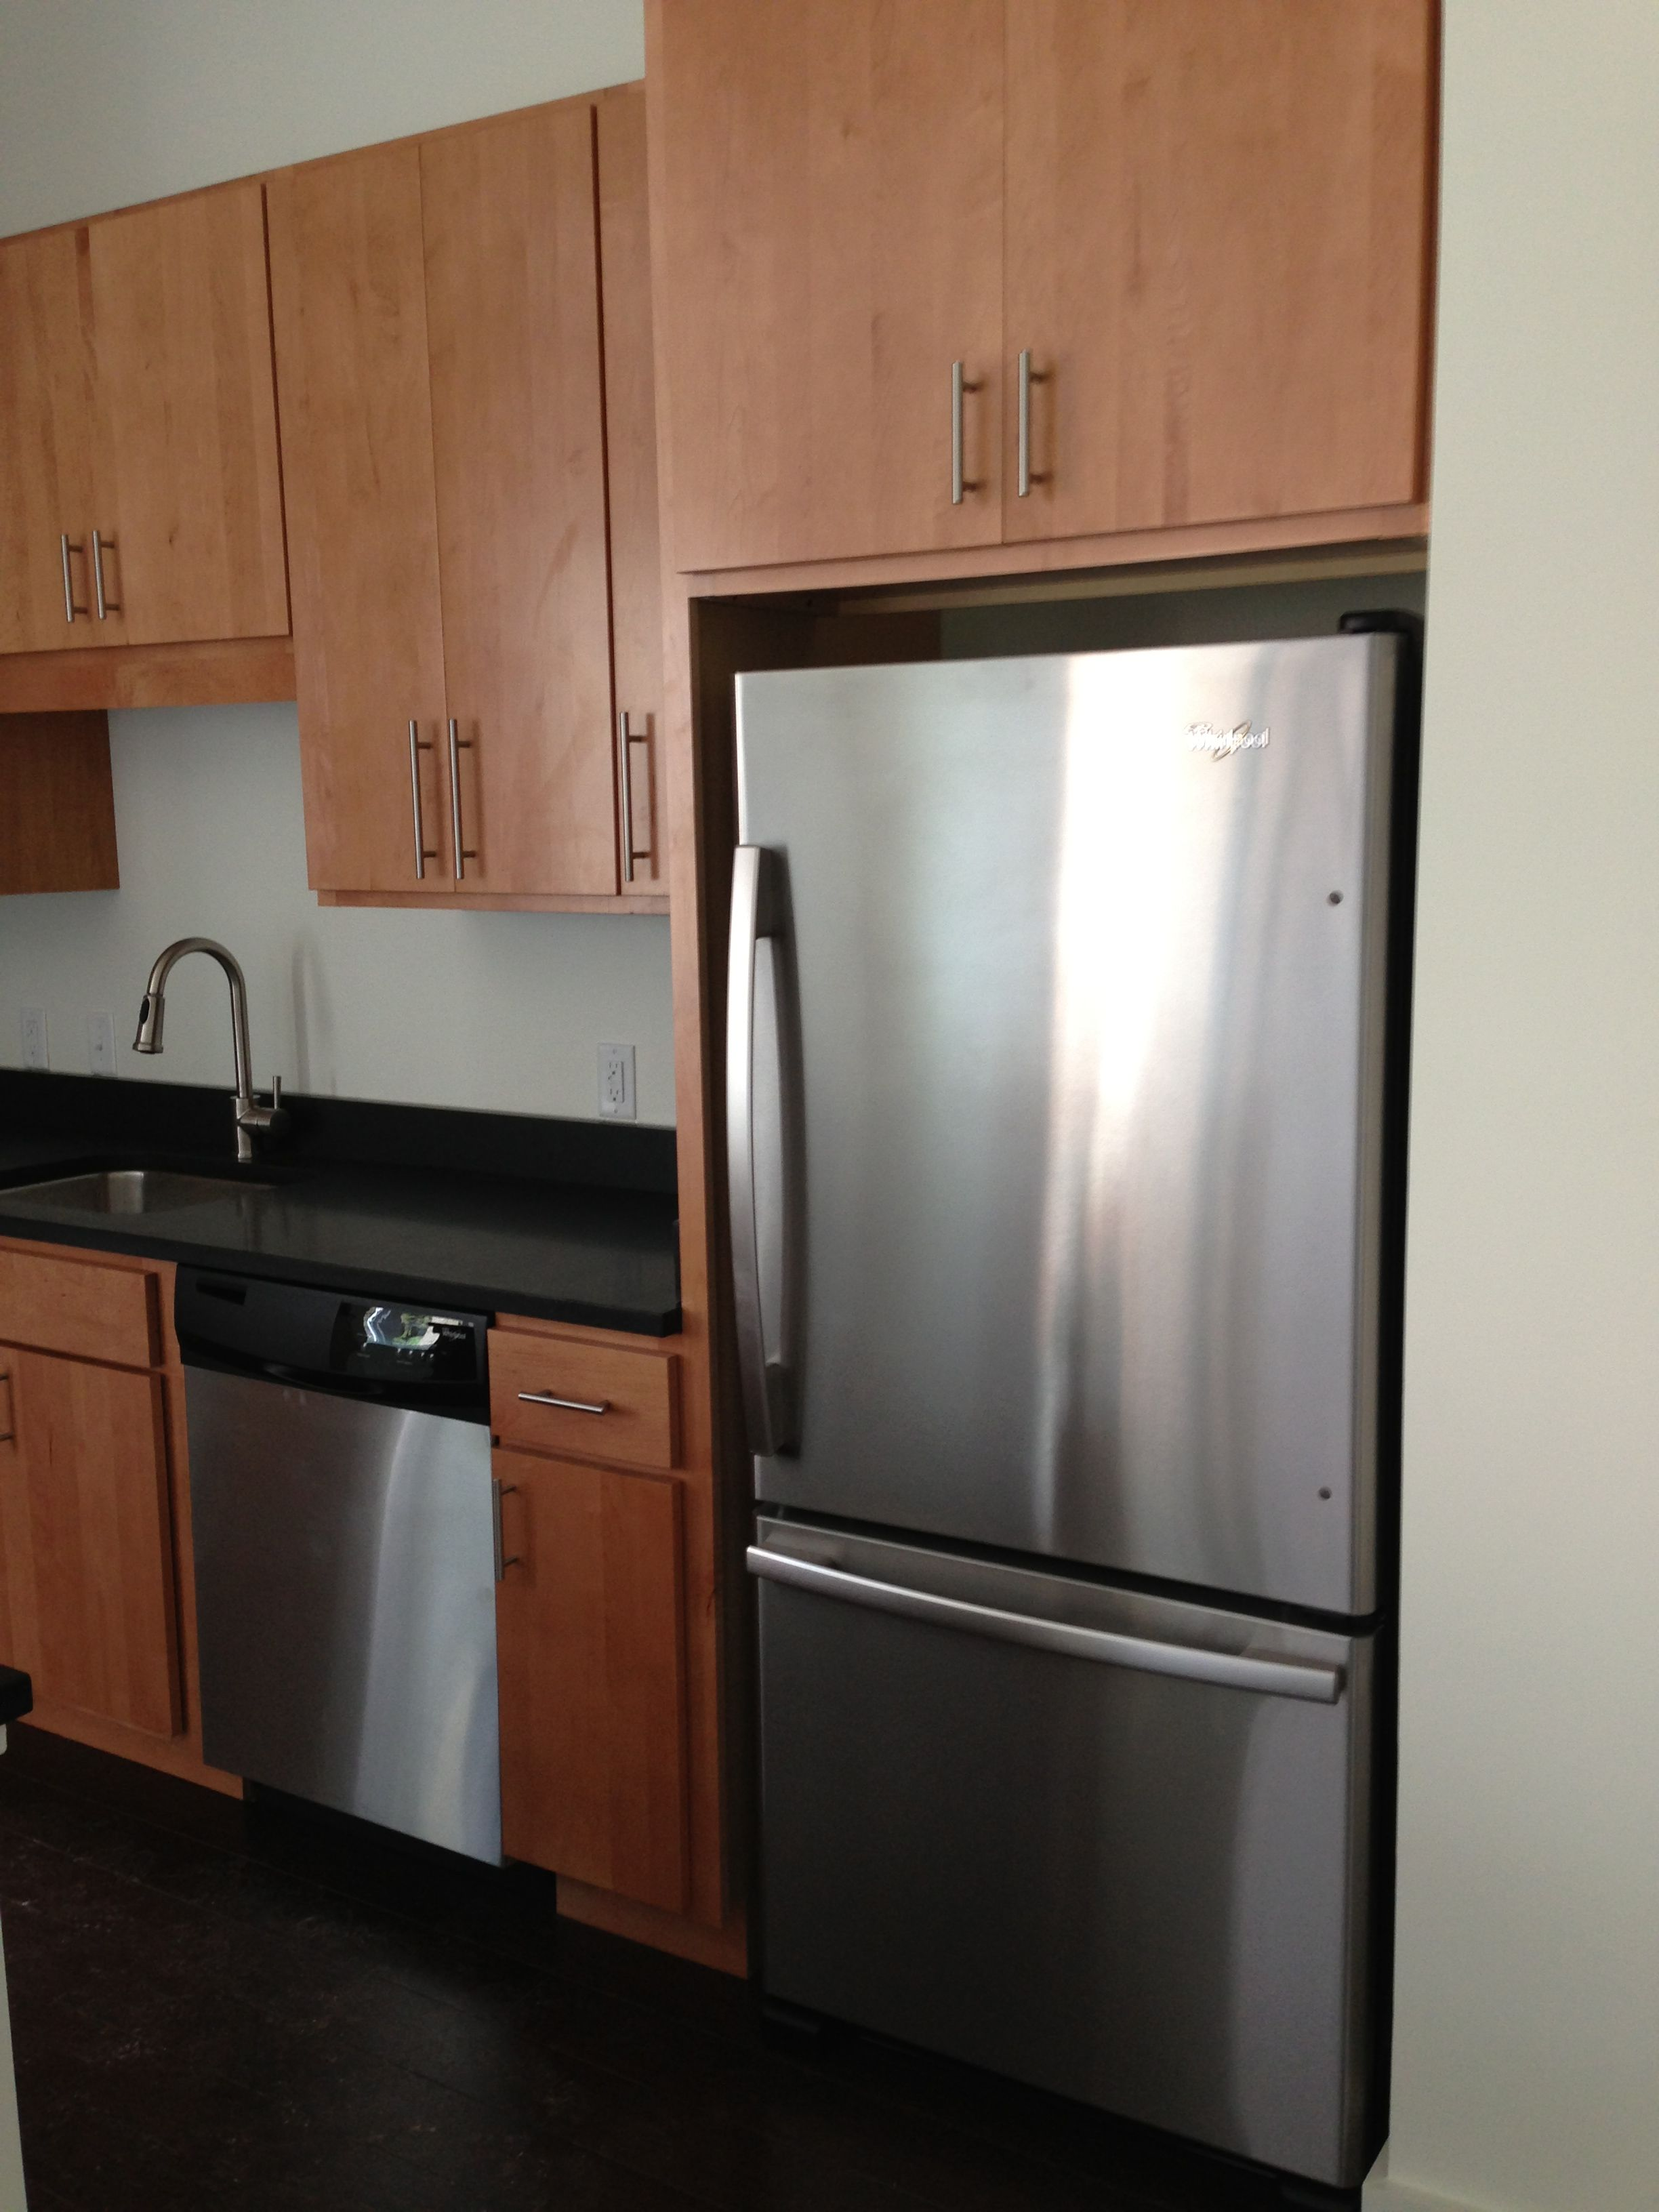 Stainless Steel Energy Star Applicances Luxury Apartments Apartment Communities Sweet Home